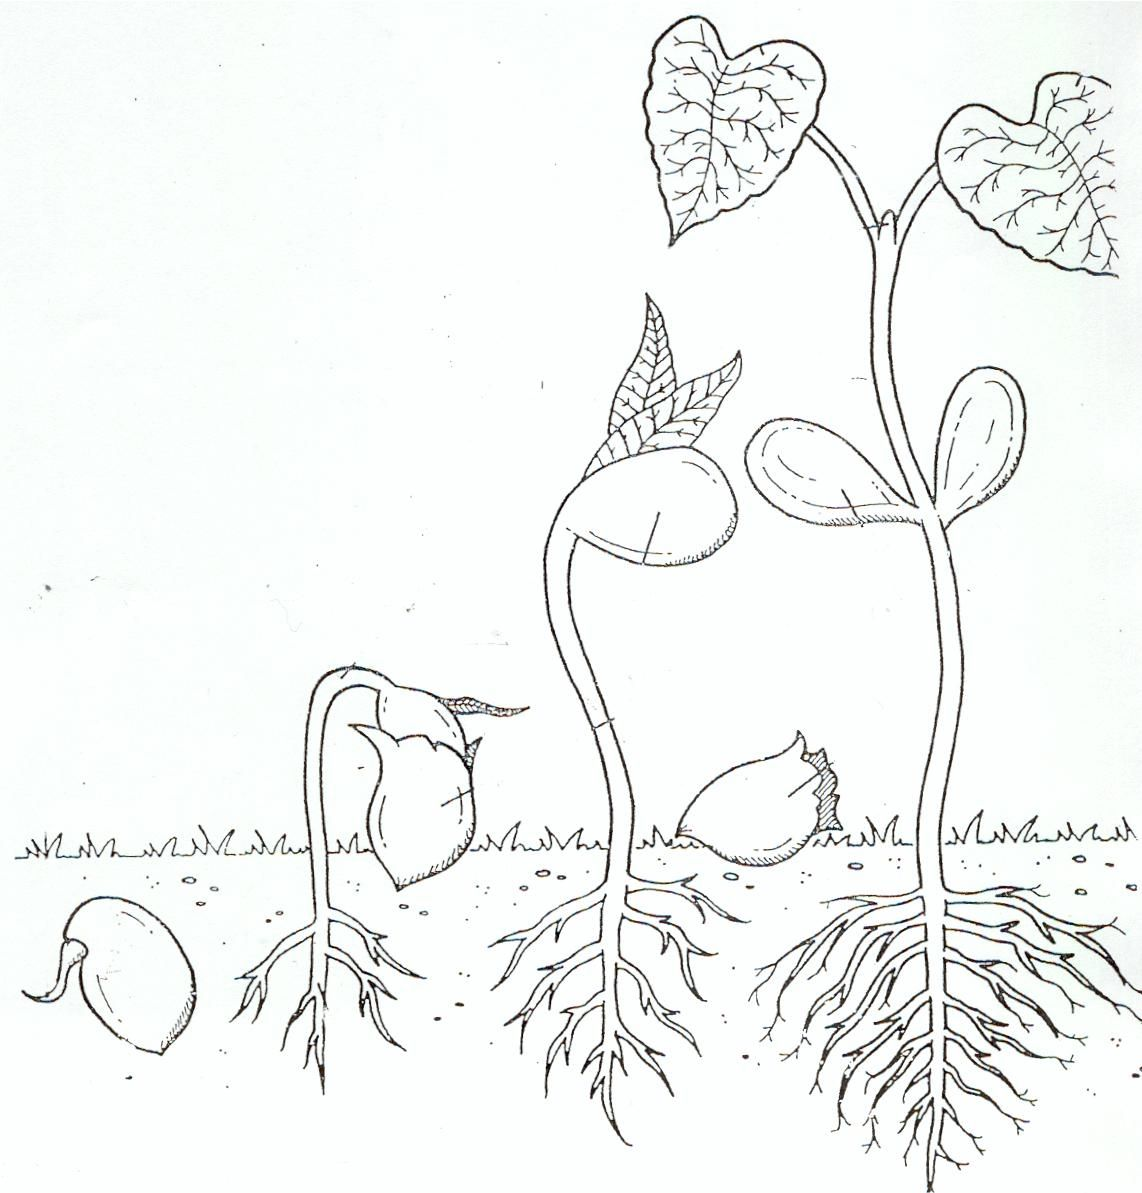 Life Cycle Coloring Page of a Seed to Plant A | Flower life cycle ...